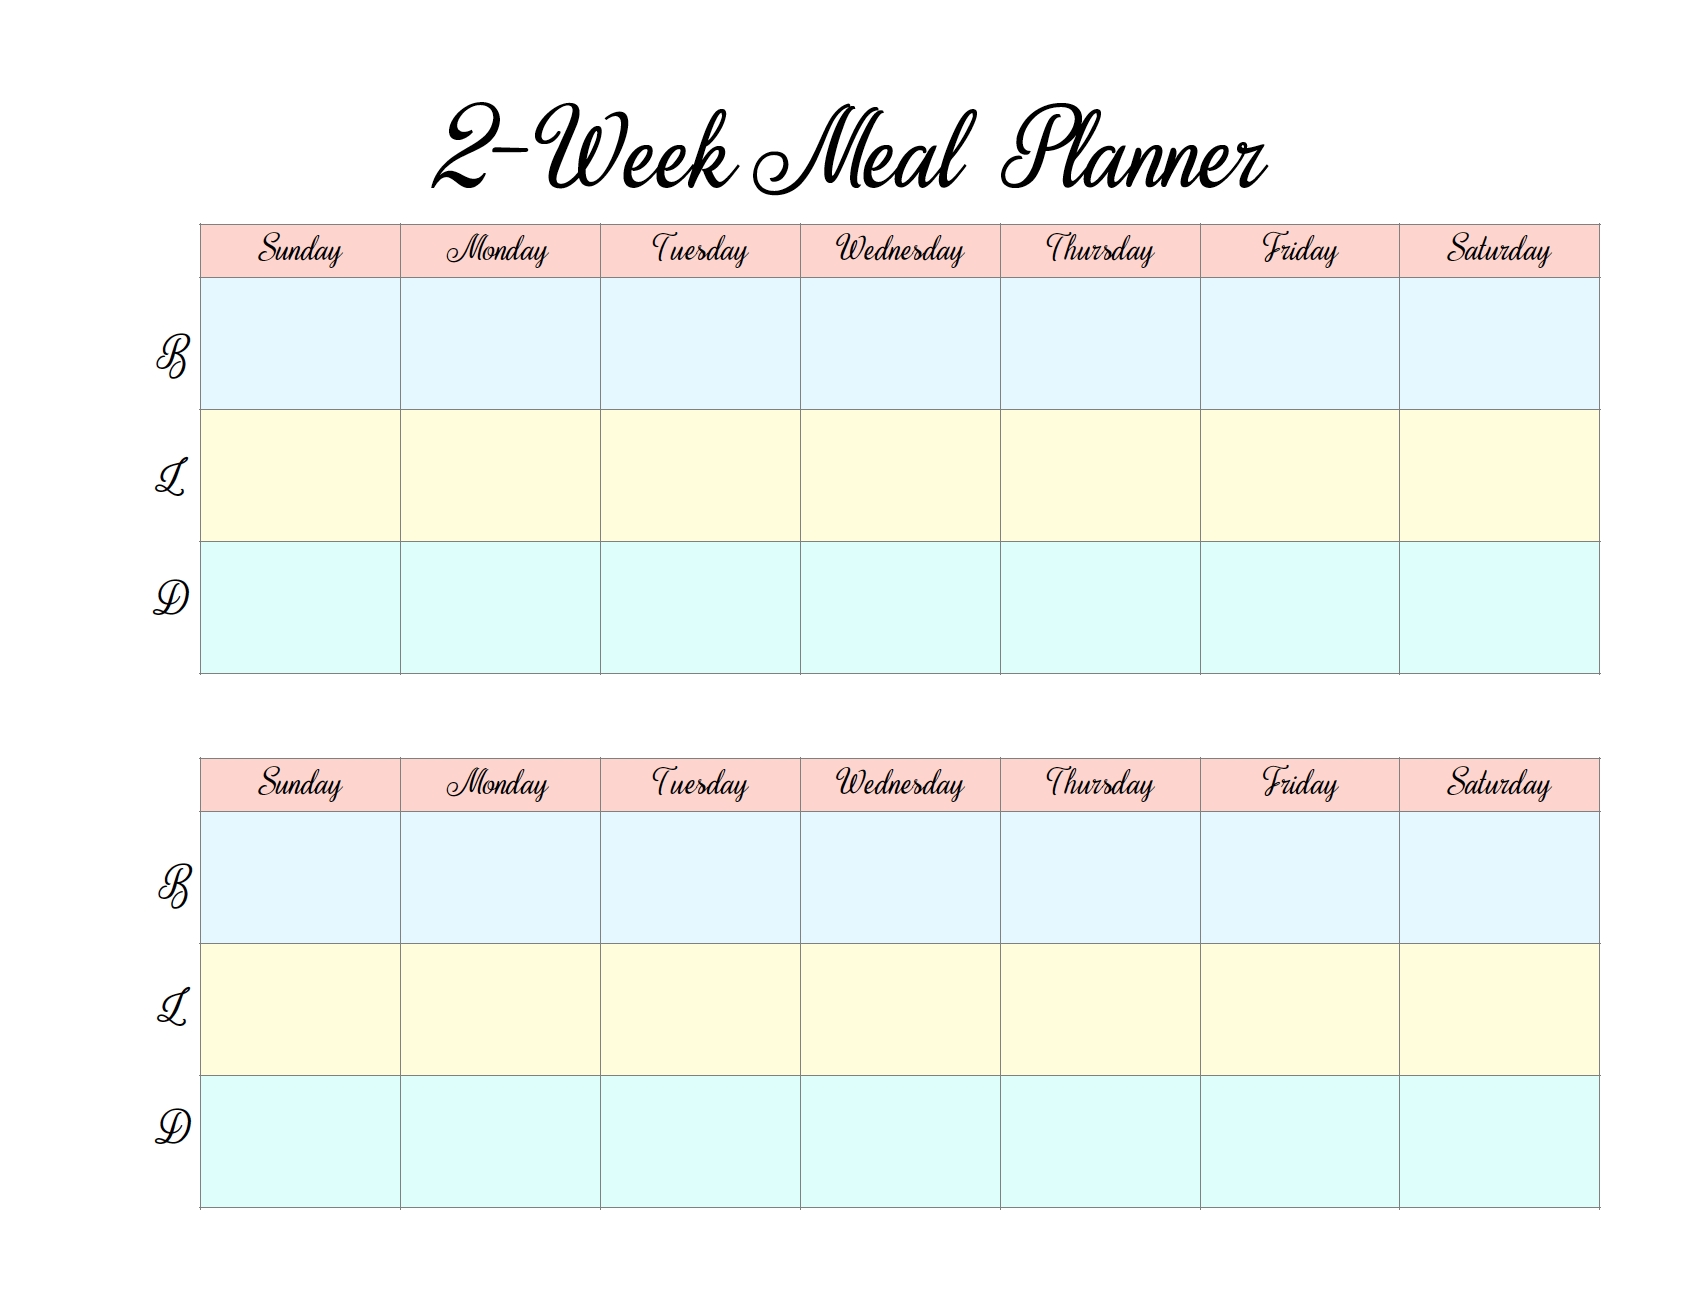 Free Printable 2 Week Meal Planners: 4 Designs